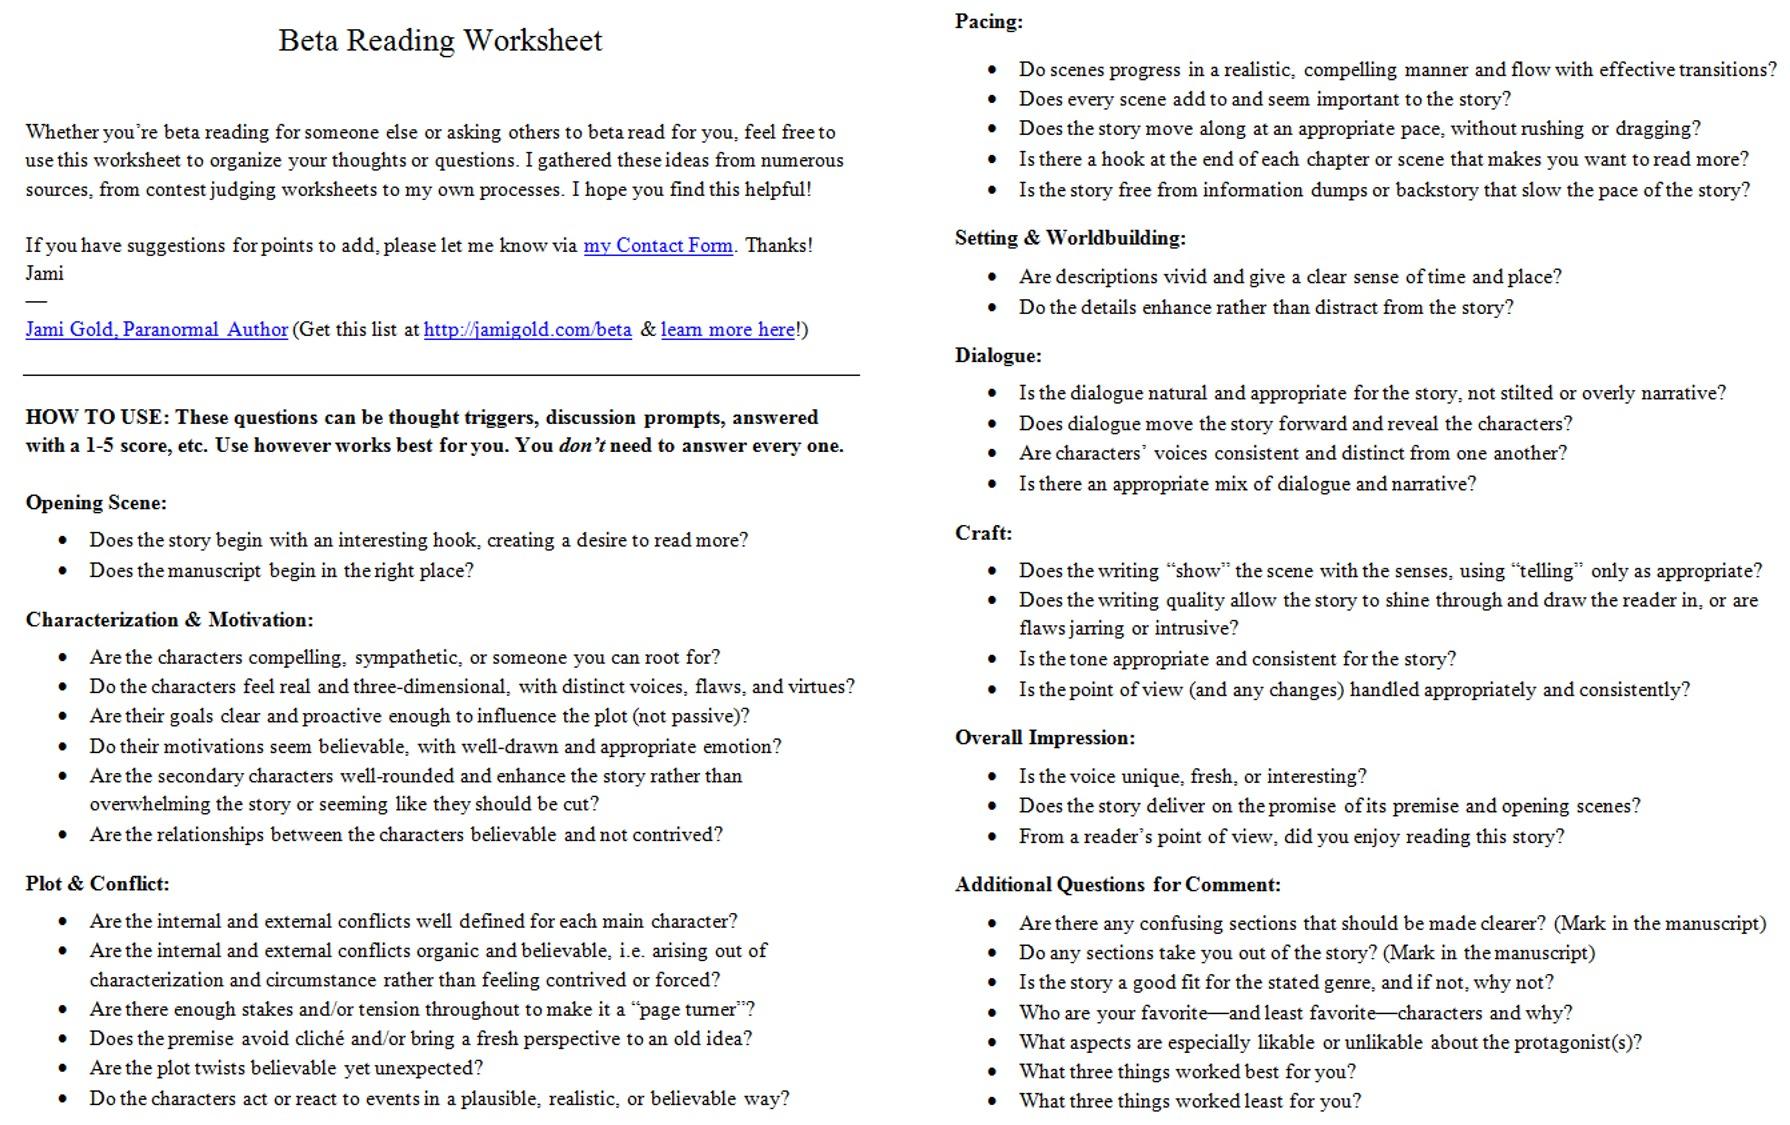 Aldiablosus  Inspiring Worksheets For Writers  Jami Gold Paranormal Author With Luxury Screen Shot Of The Twopage Beta Reading Worksheet With Archaic Position Worksheets Also Simplify Worksheet In Addition Missing Number Subtraction Worksheets And Algebra Problem Worksheets As Well As Cashflow Worksheet Additionally Integration By Parts Worksheet With Answers From Jamigoldcom With Aldiablosus  Luxury Worksheets For Writers  Jami Gold Paranormal Author With Archaic Screen Shot Of The Twopage Beta Reading Worksheet And Inspiring Position Worksheets Also Simplify Worksheet In Addition Missing Number Subtraction Worksheets From Jamigoldcom